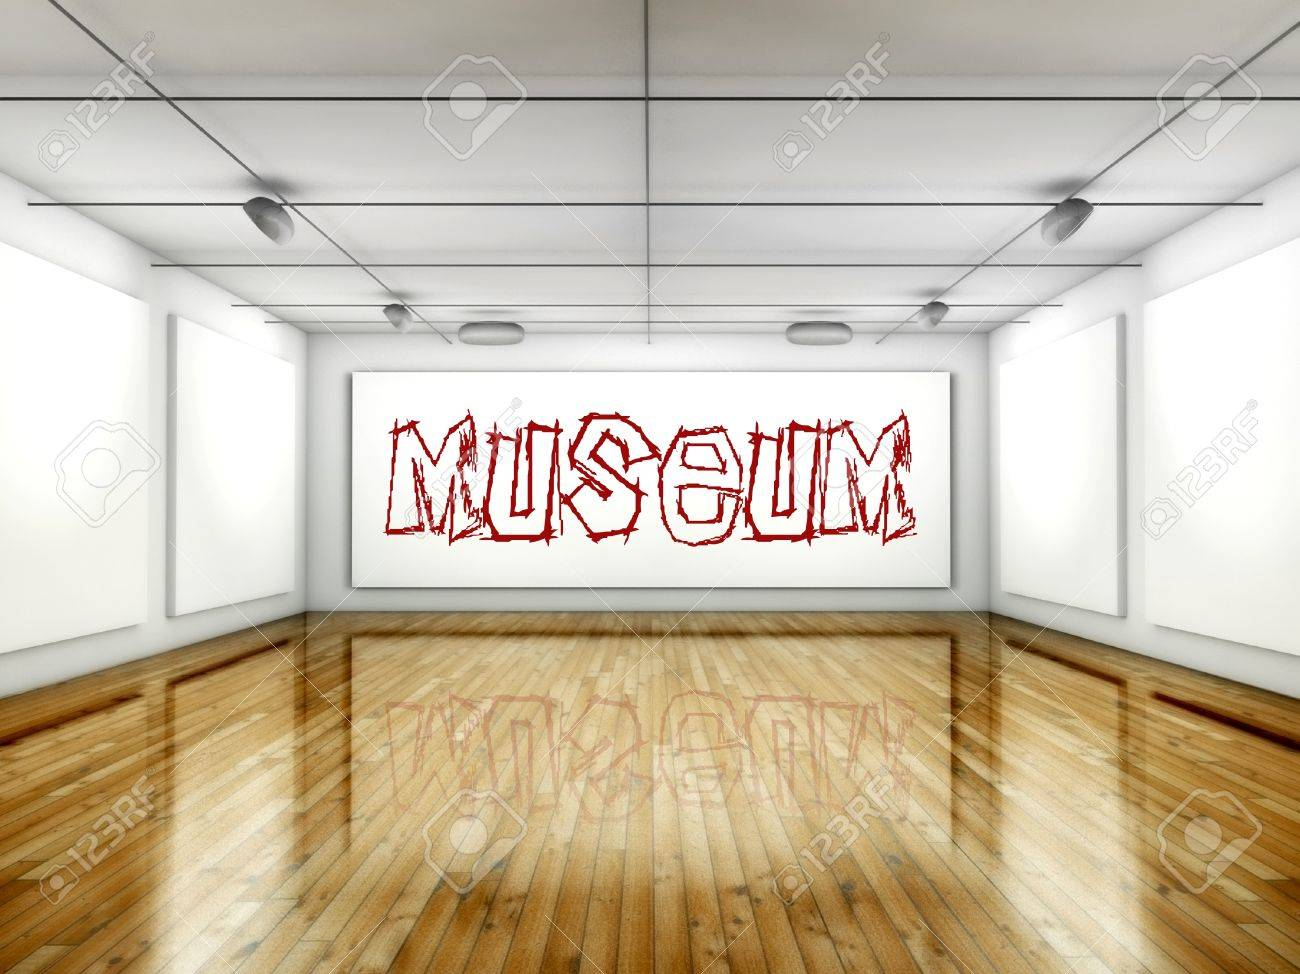 Museum concept, Art gallery interior with wall paintings